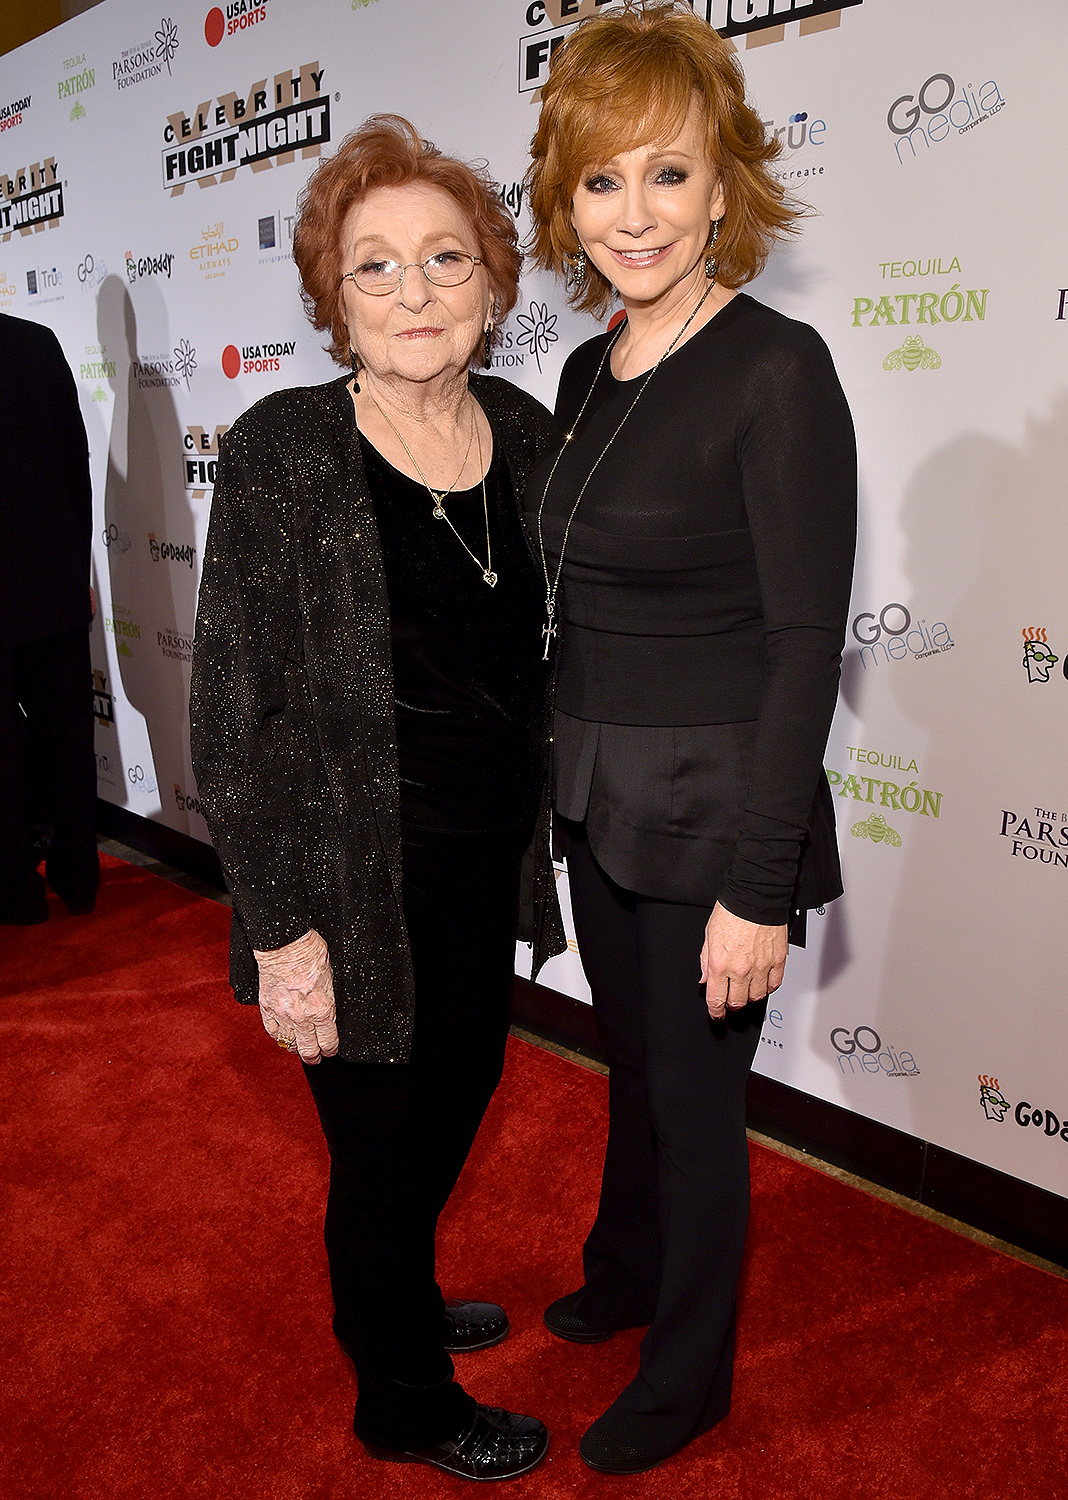 Reba McEntire (L) and Jacqueline Smith